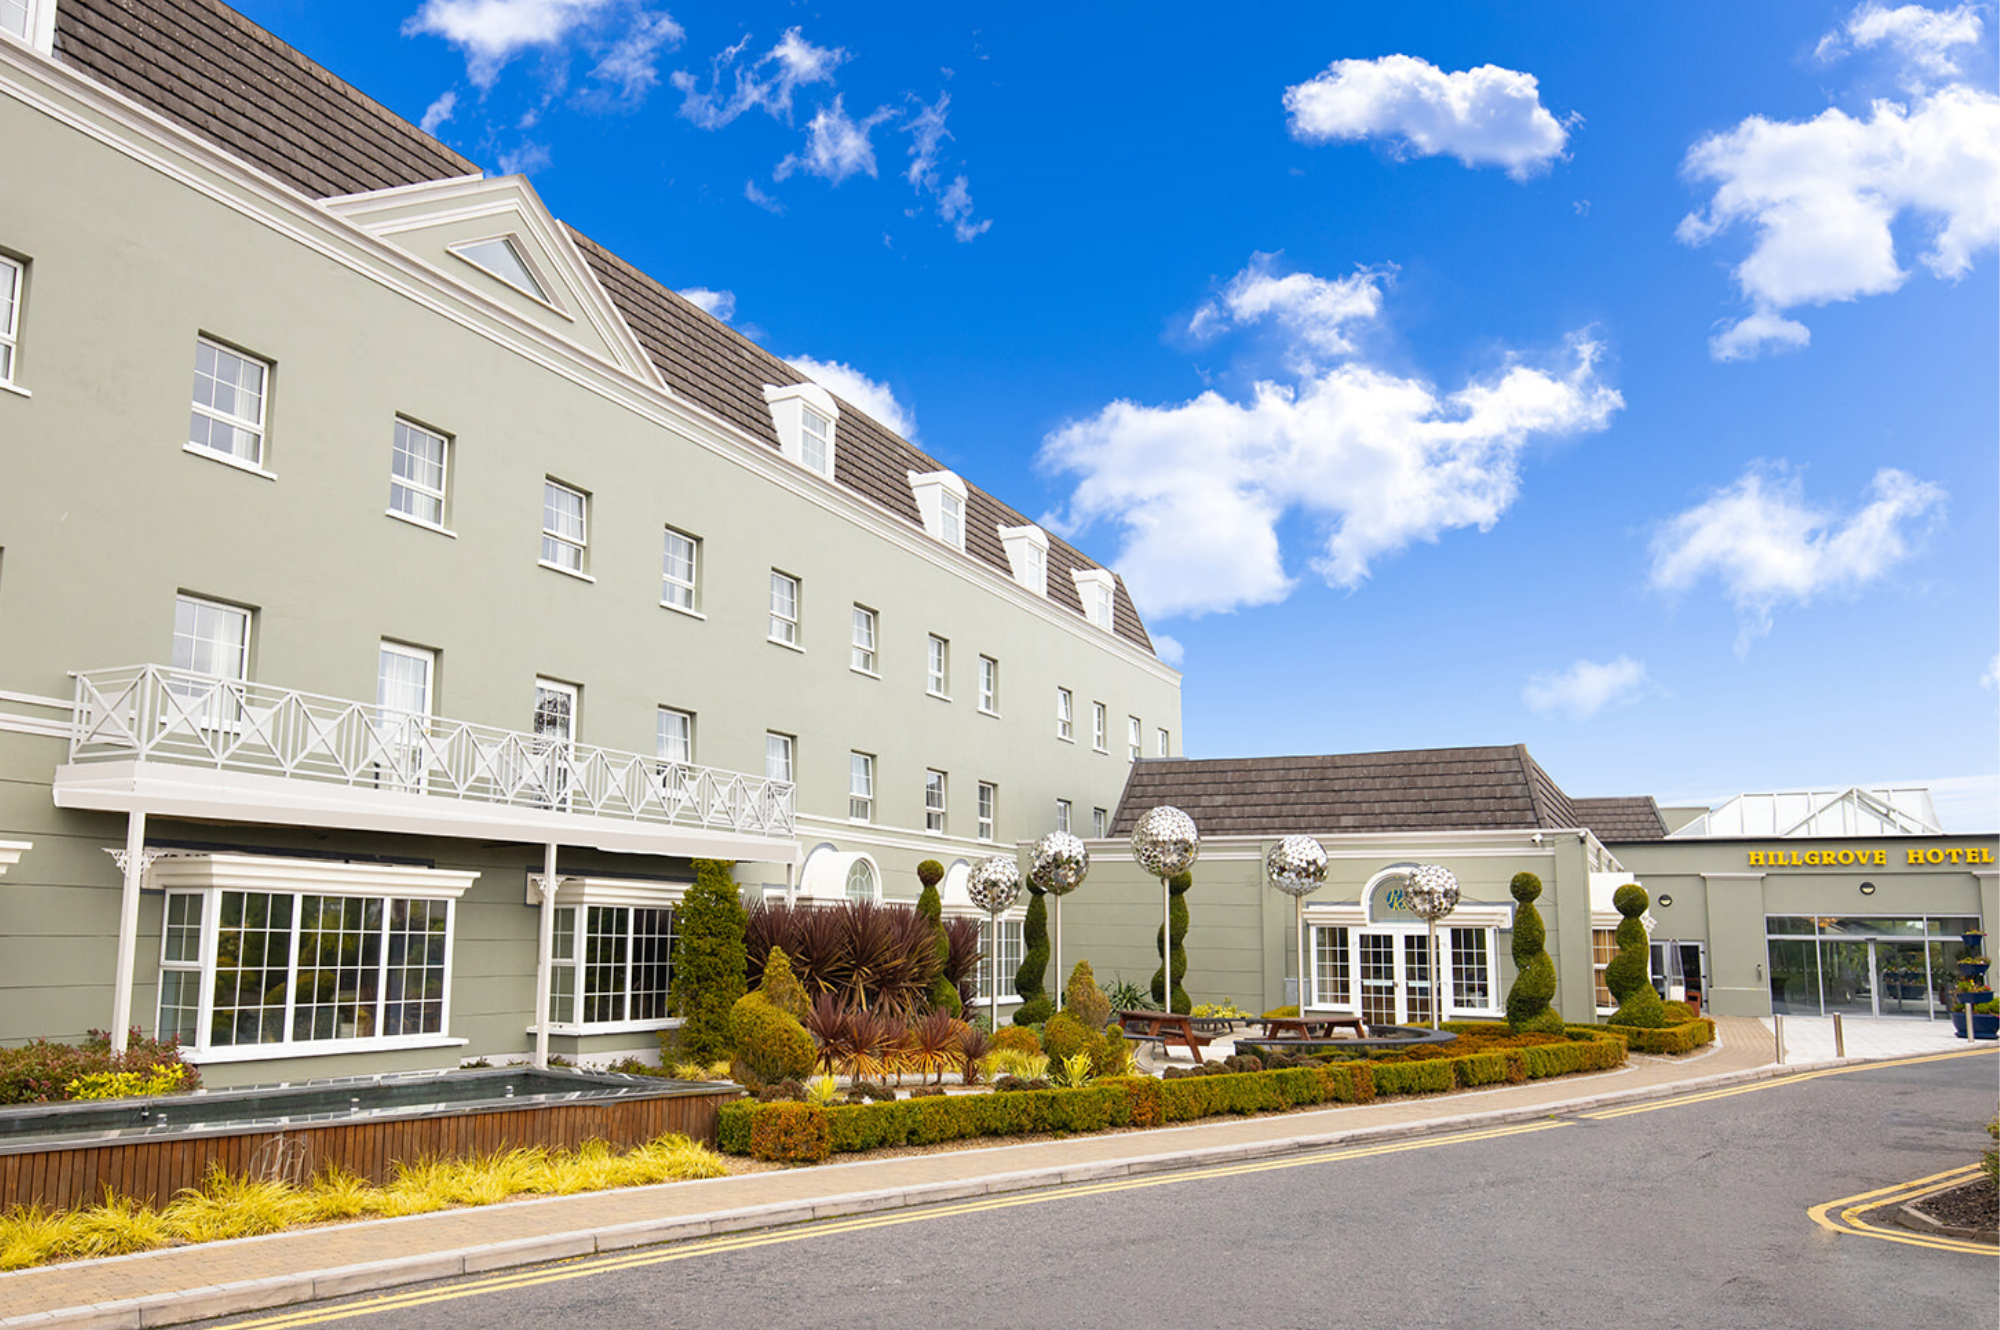 Hillgrove Hotel and Spa Monaghan - A Saucepan Kids review - Family Travel and Food Ireland